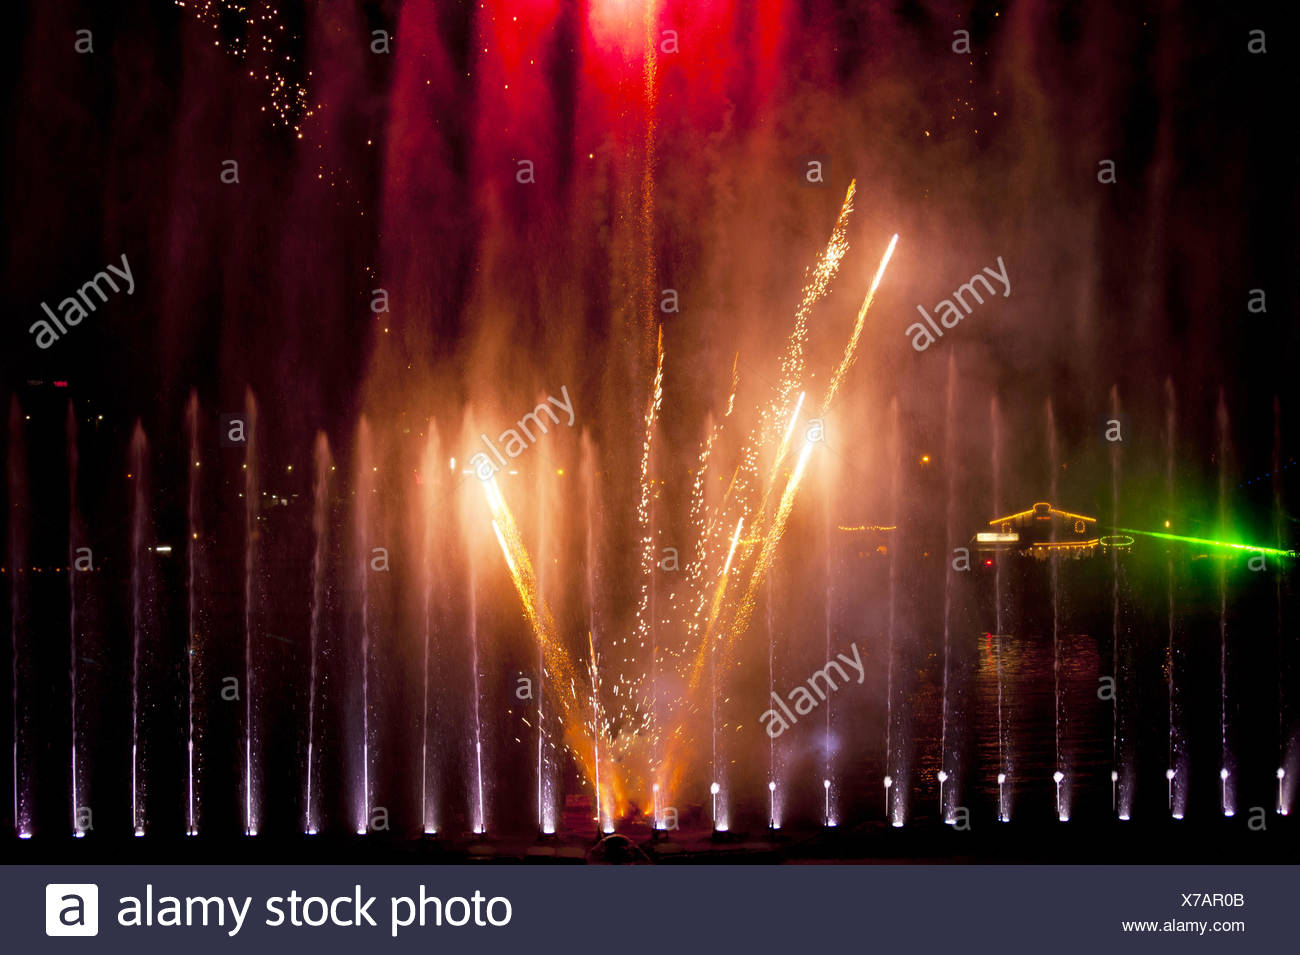 Water and Fire Spectacle - Stock Image